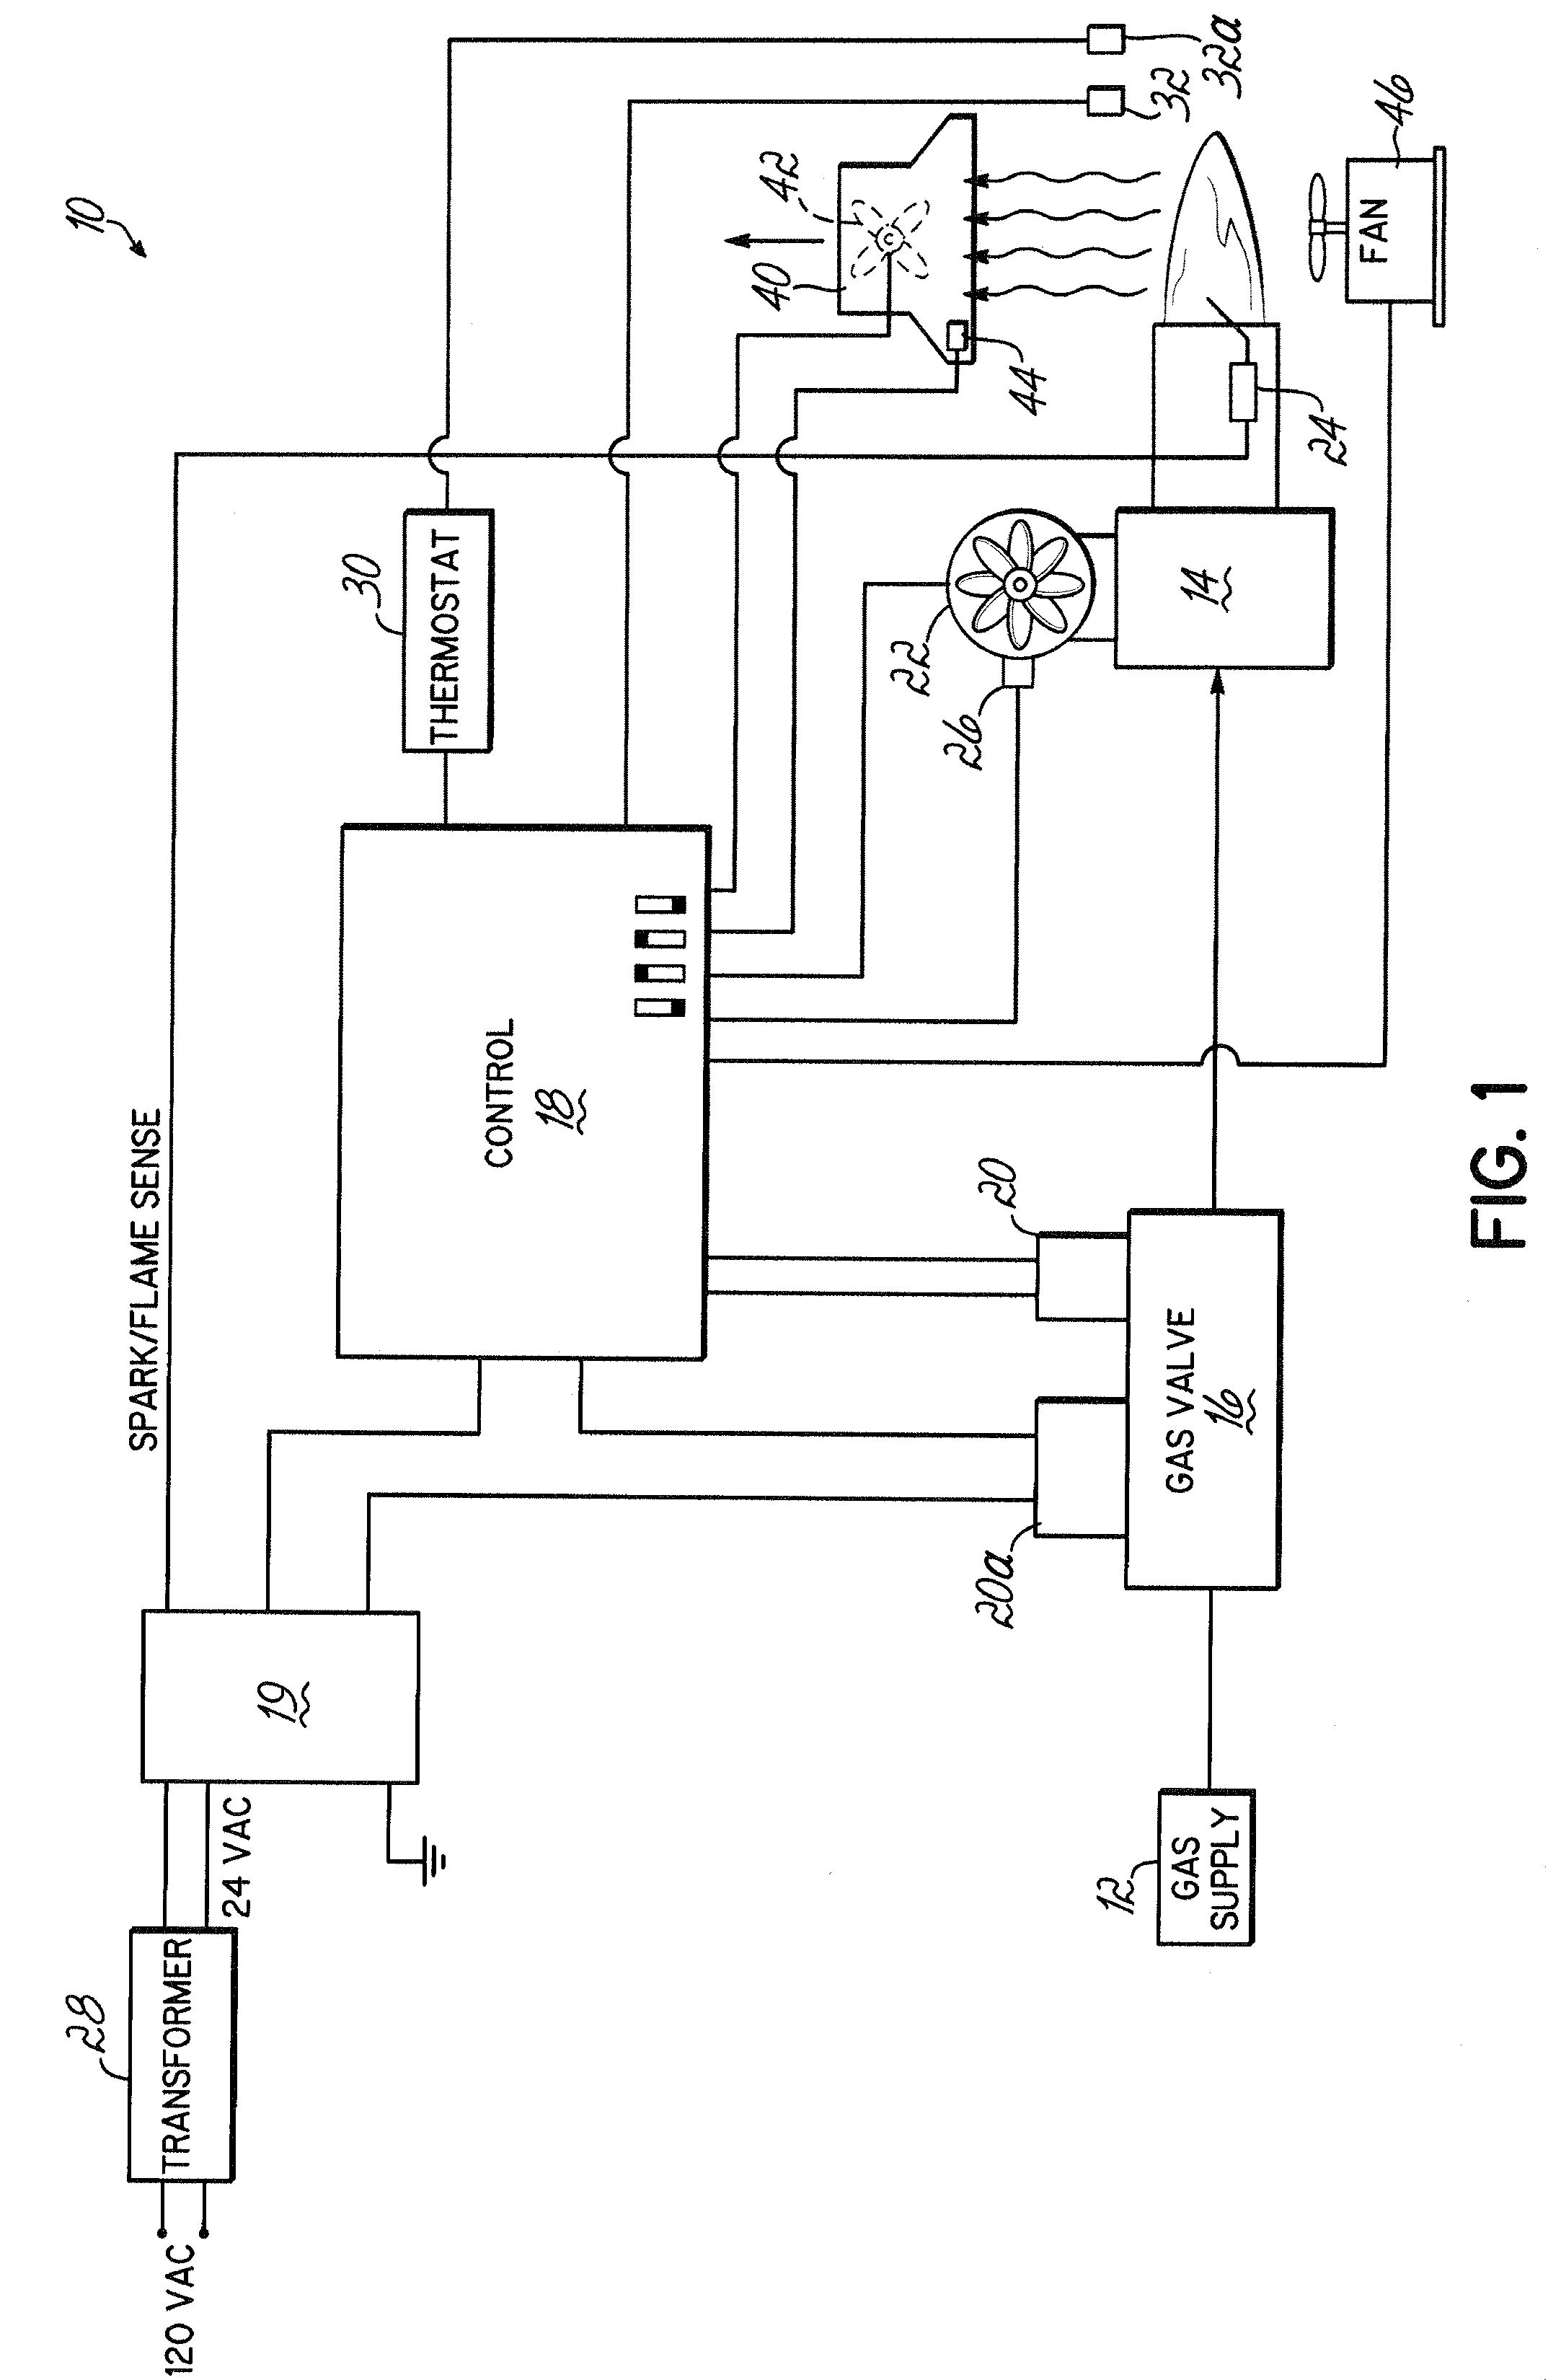 patent us modulated power burner system and method patent drawing